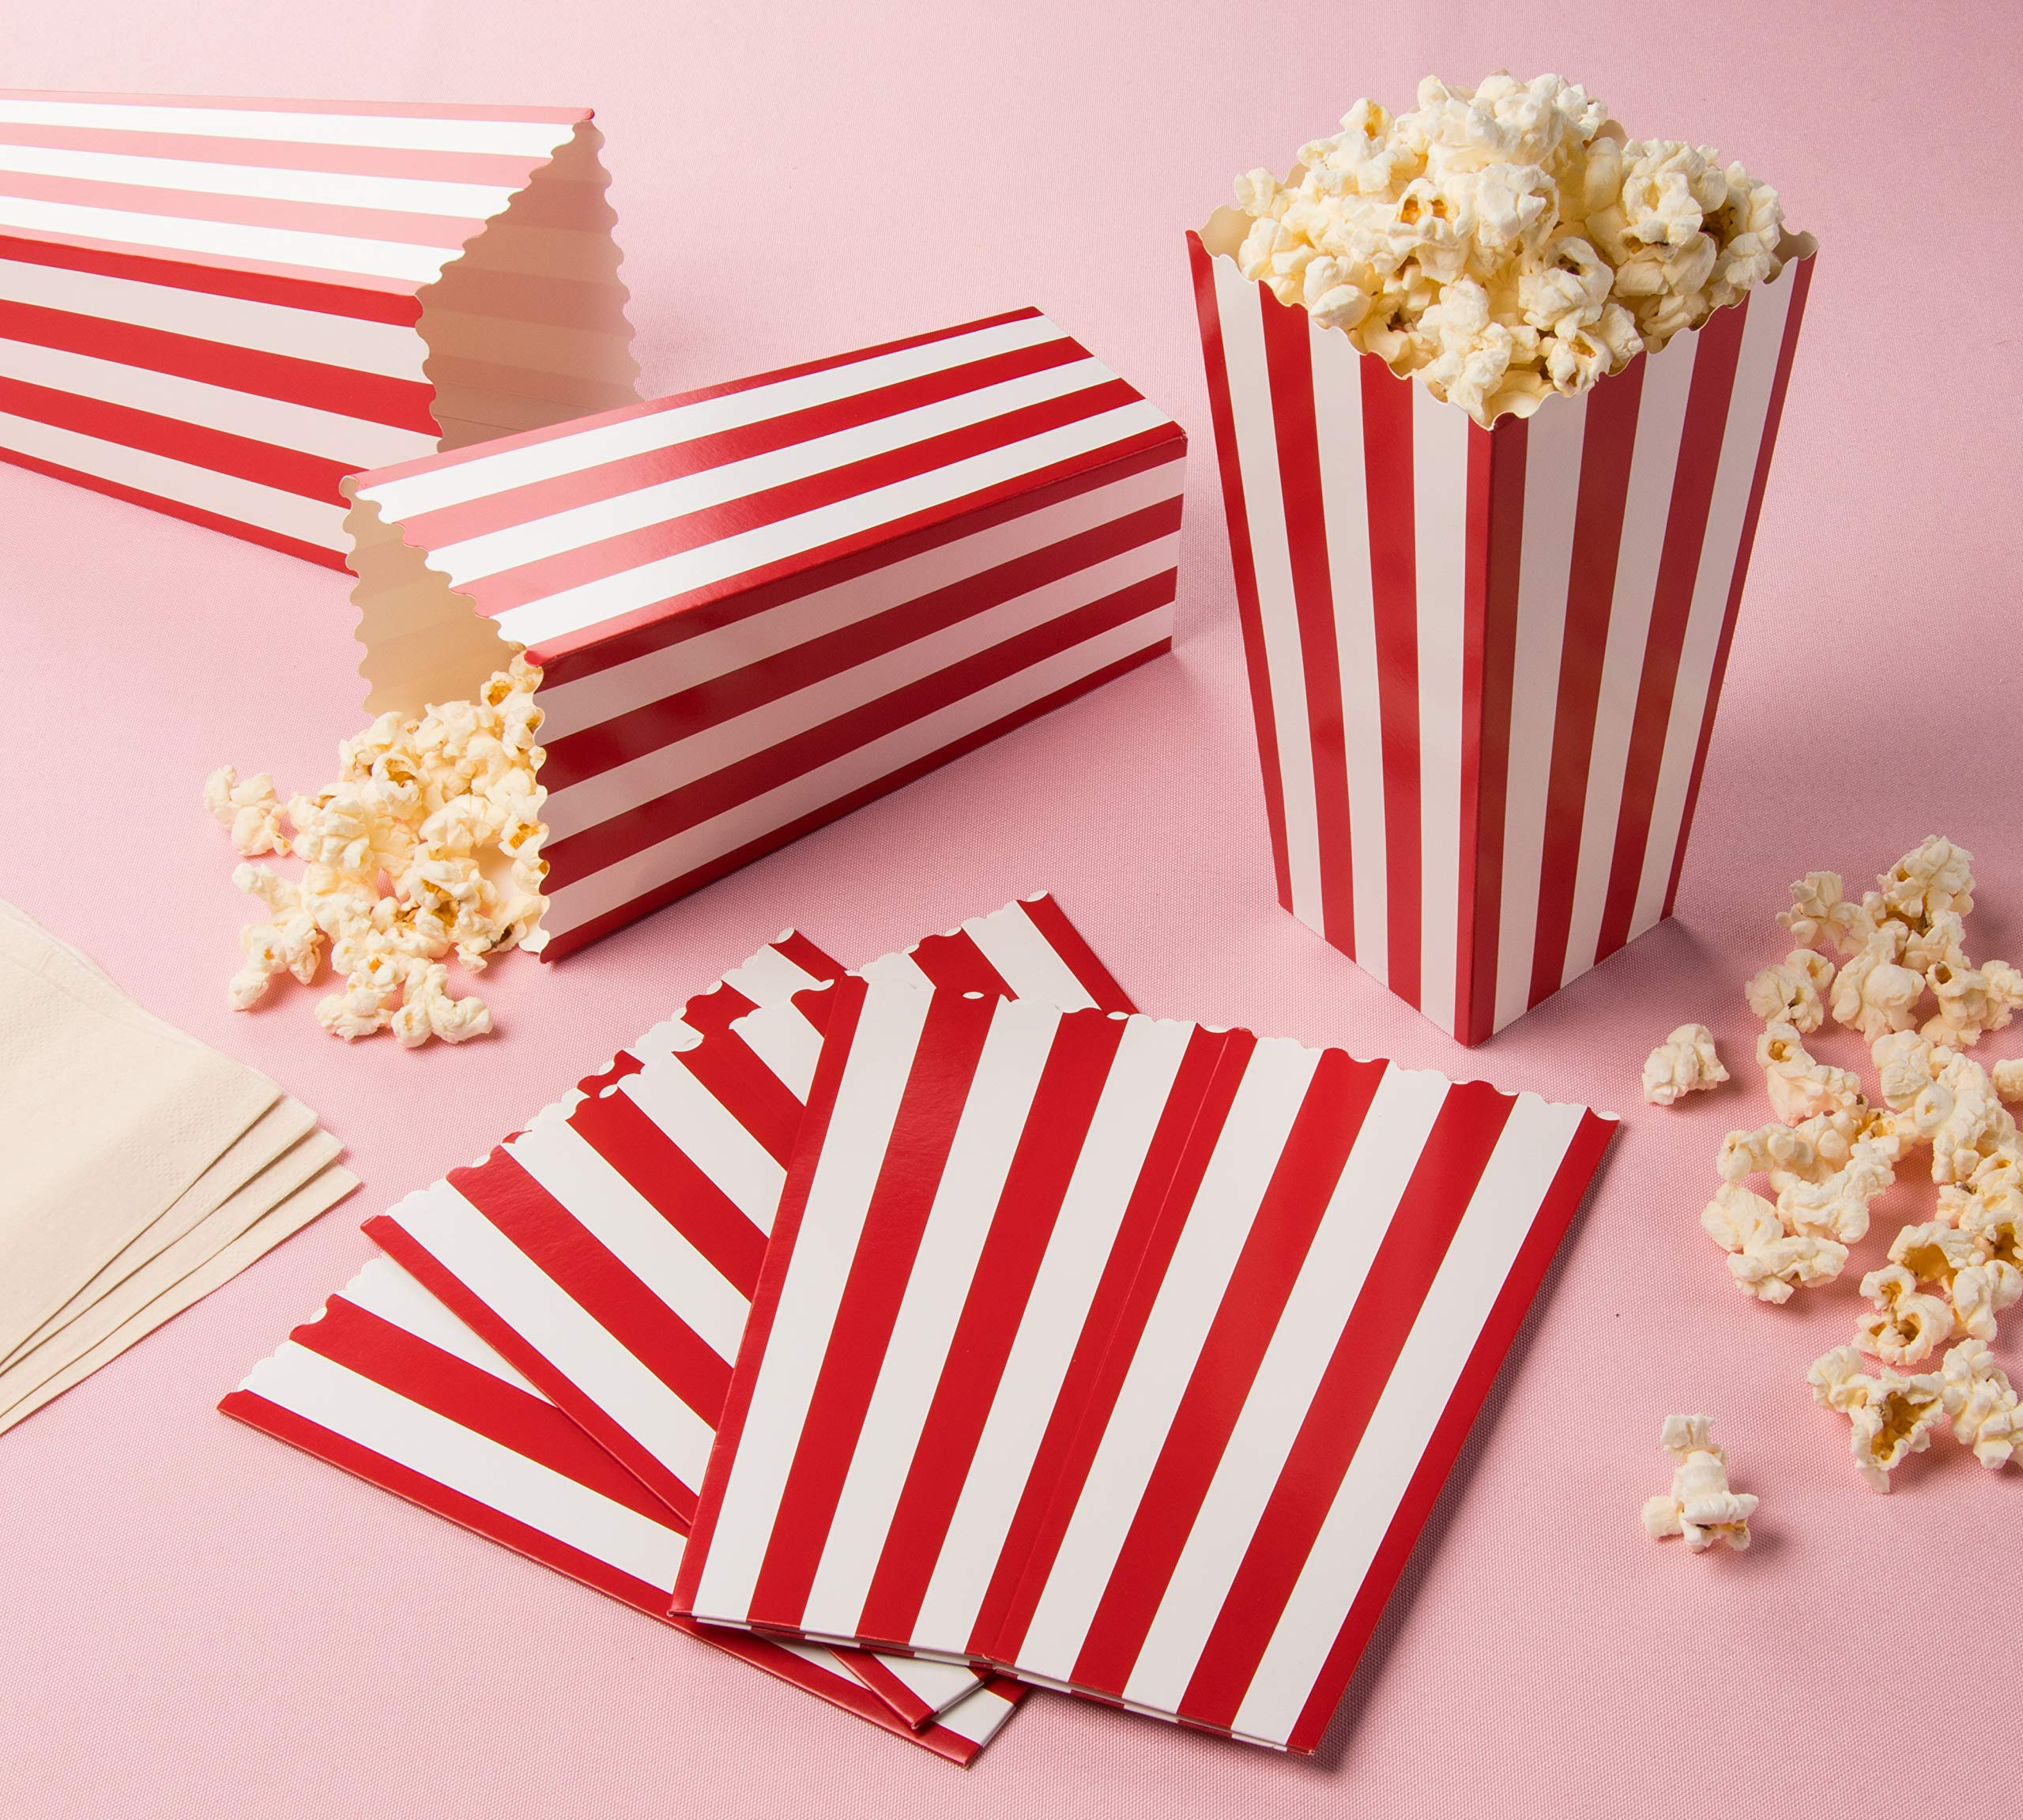 Set of 100 Popcorn Favor Boxes - Paper Popcorn Containers, Popcorn Party Supplies for Movie Nights, Movie-Themed Parties, Carnival Parties, Pirate Party, Red and White - 3.7 x 7.8 x 3.7 Inches by Blue Panda (Image #3)